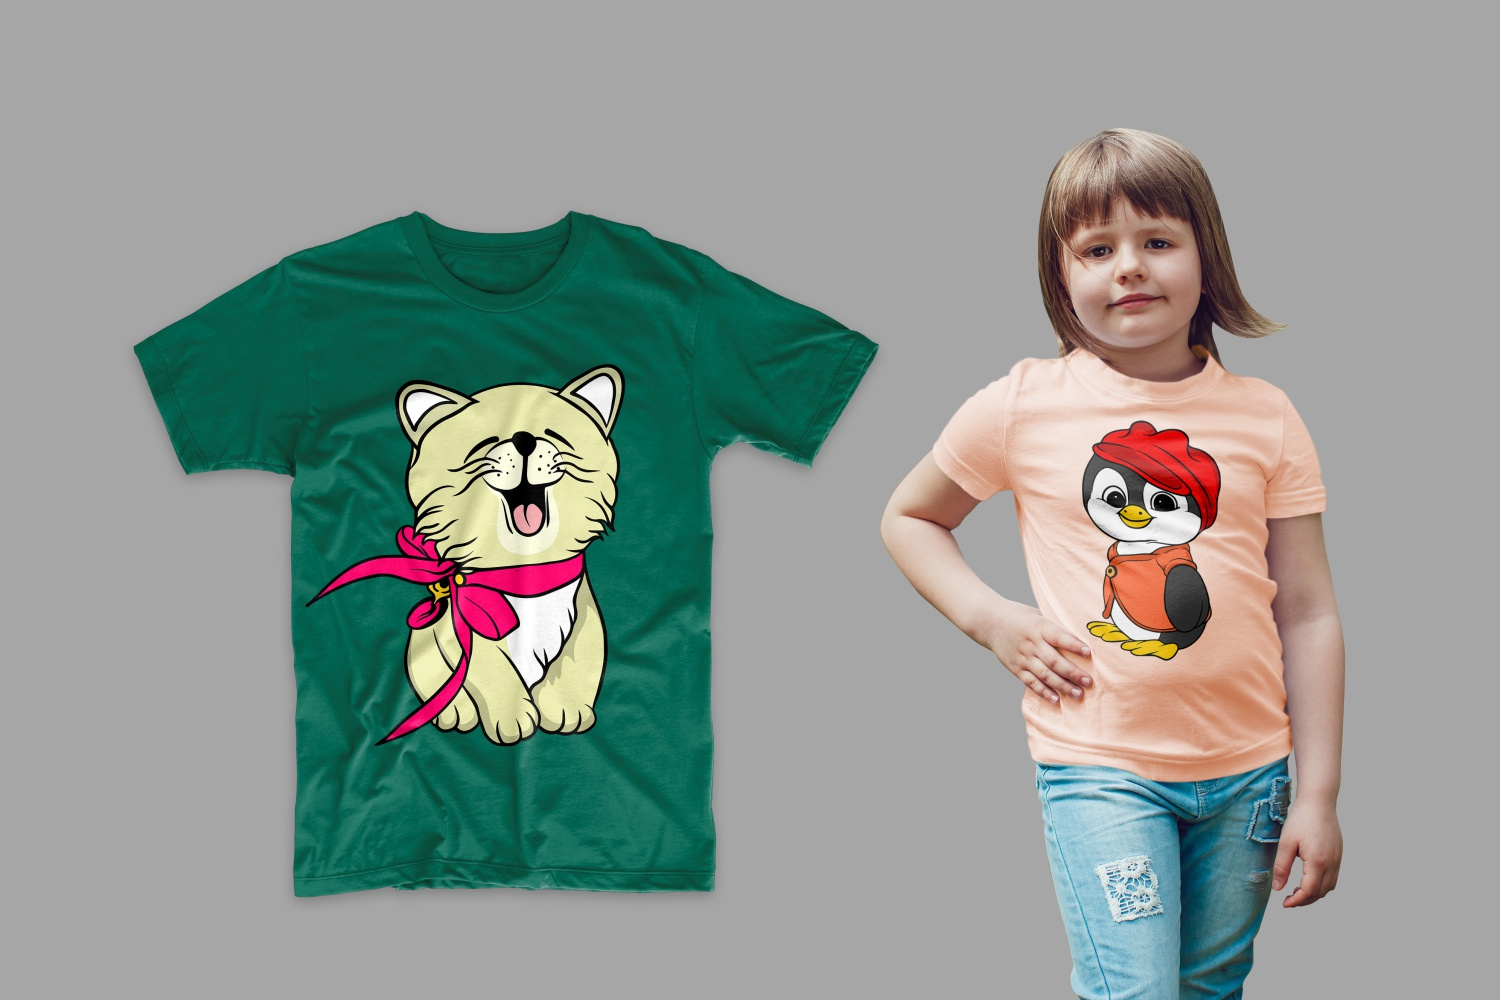 The T-shirt is green with a stylish kitten and pink with a penguin in a hat.